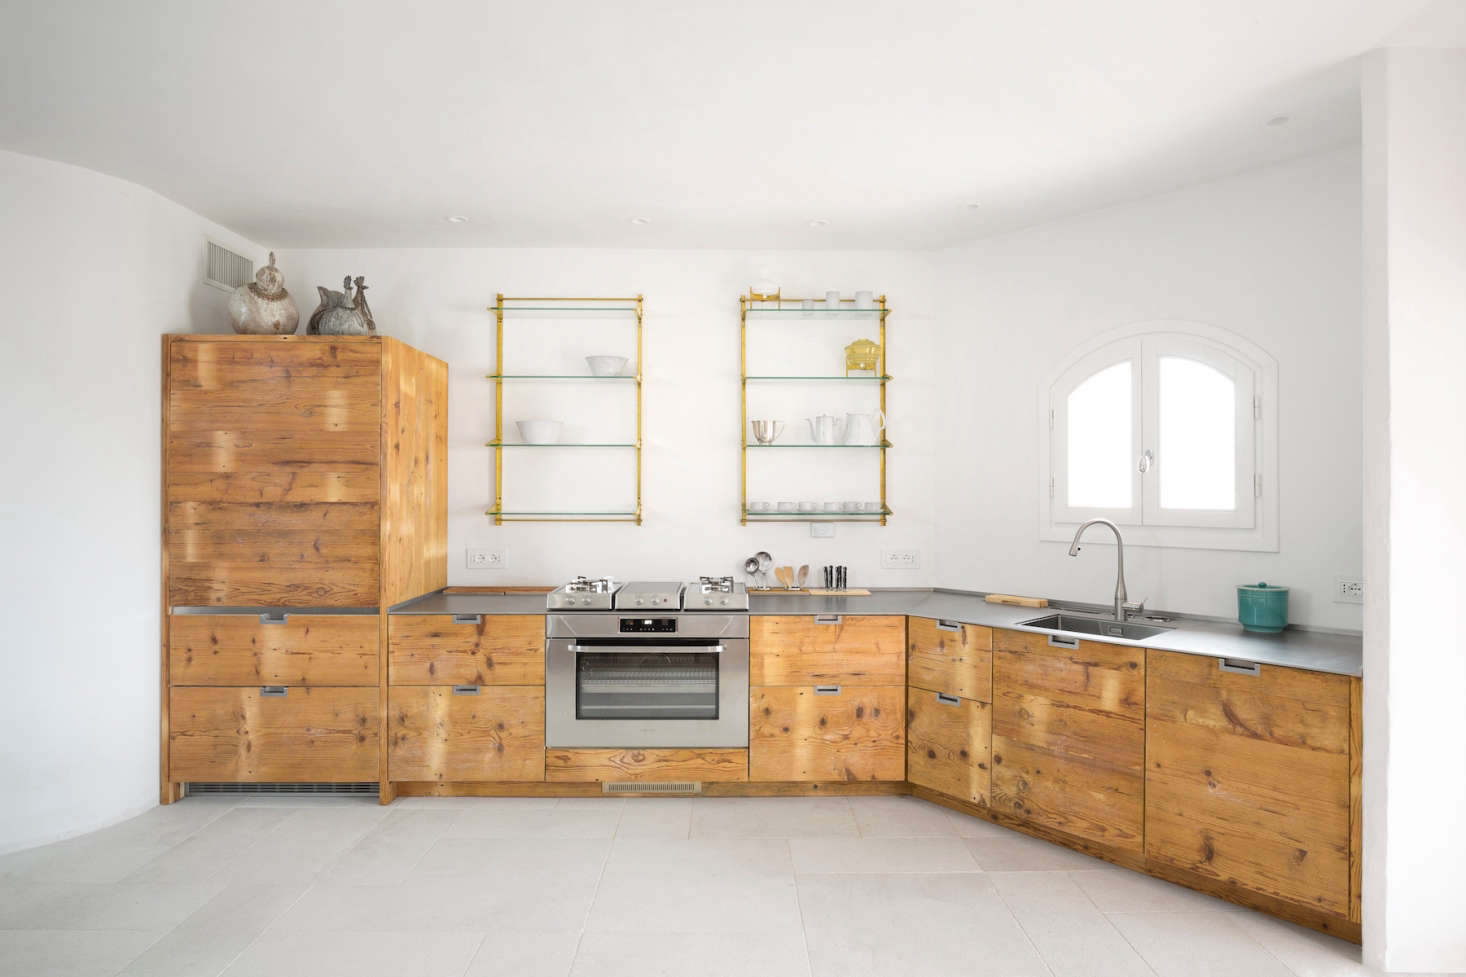 The finished kitchen with cabinet fronts made of 0 year old larch wood (larch wood is known for its durability and water resistance).